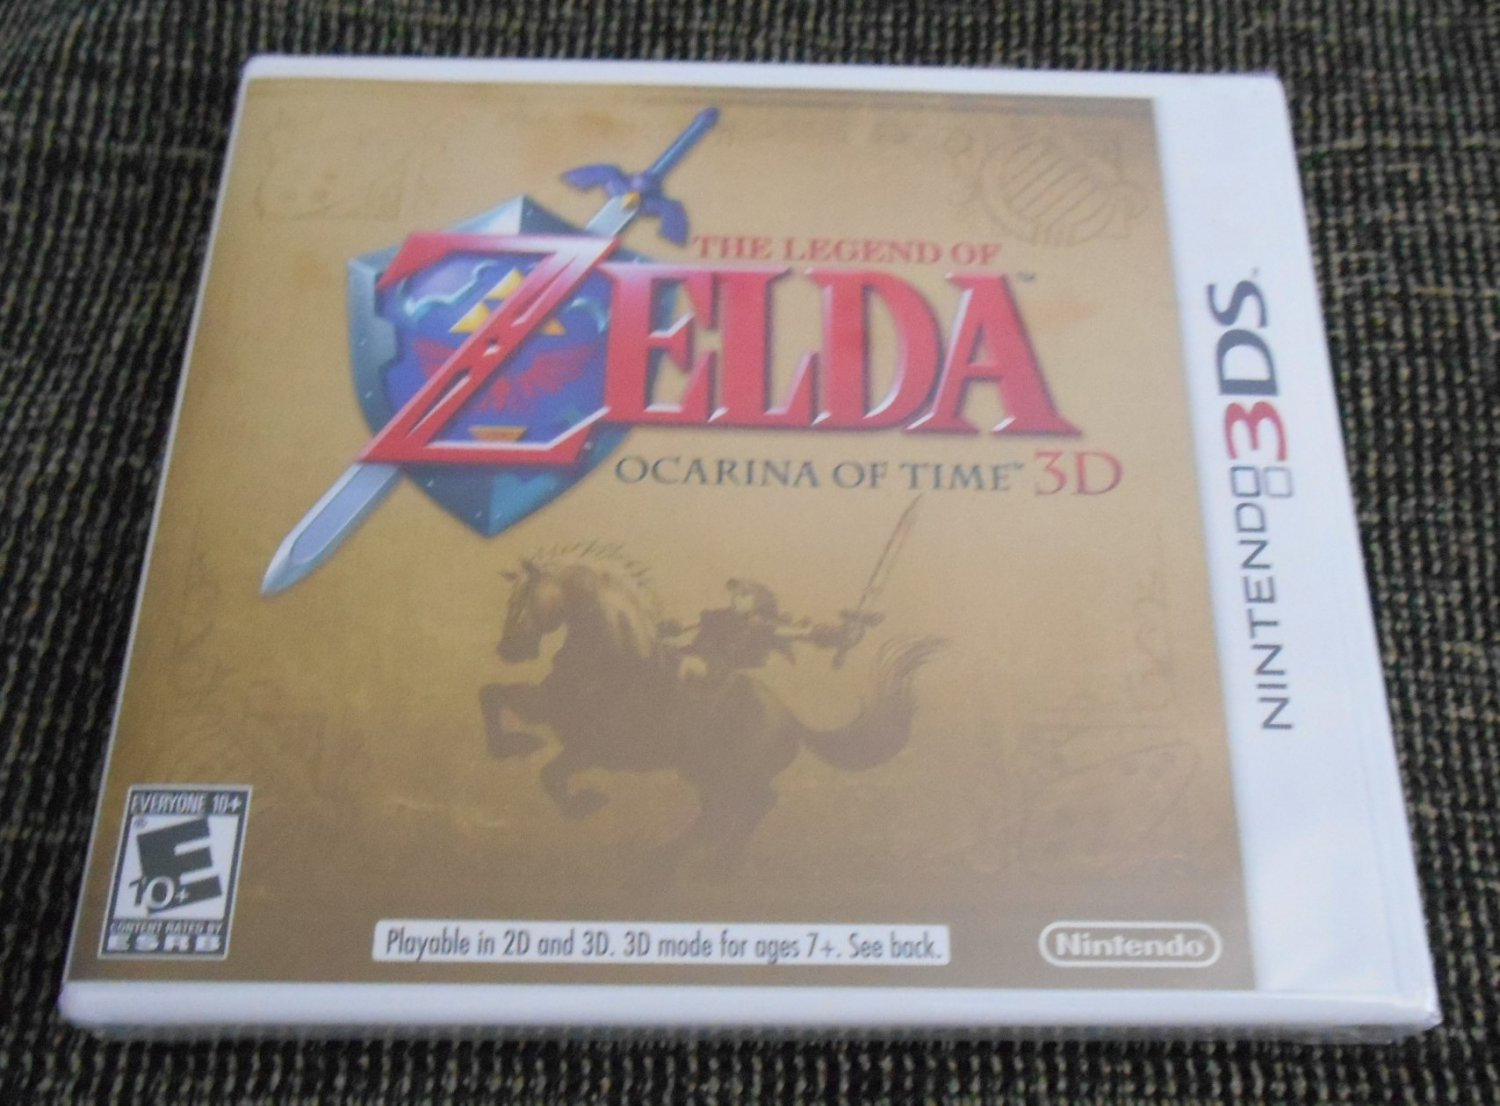 The legend of zelda ocarina of time 3ds nintendo 3ds - Ocarina of time 3ds console ...